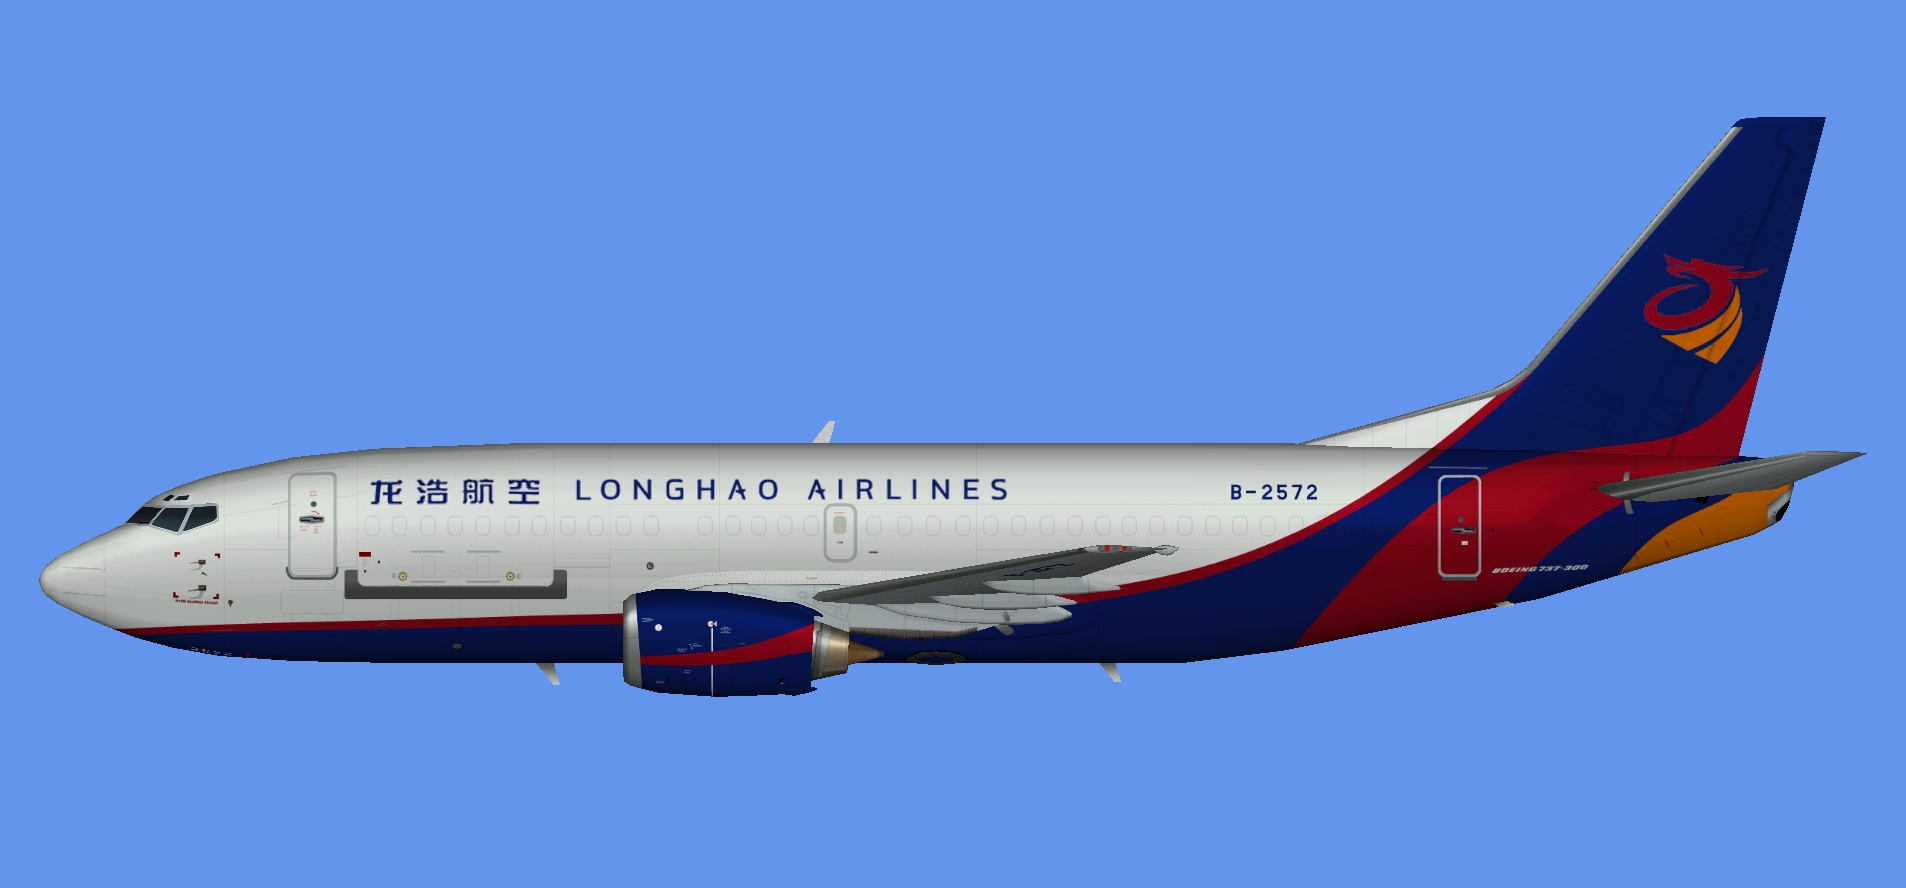 Longhao Airlines Boeing 737-300